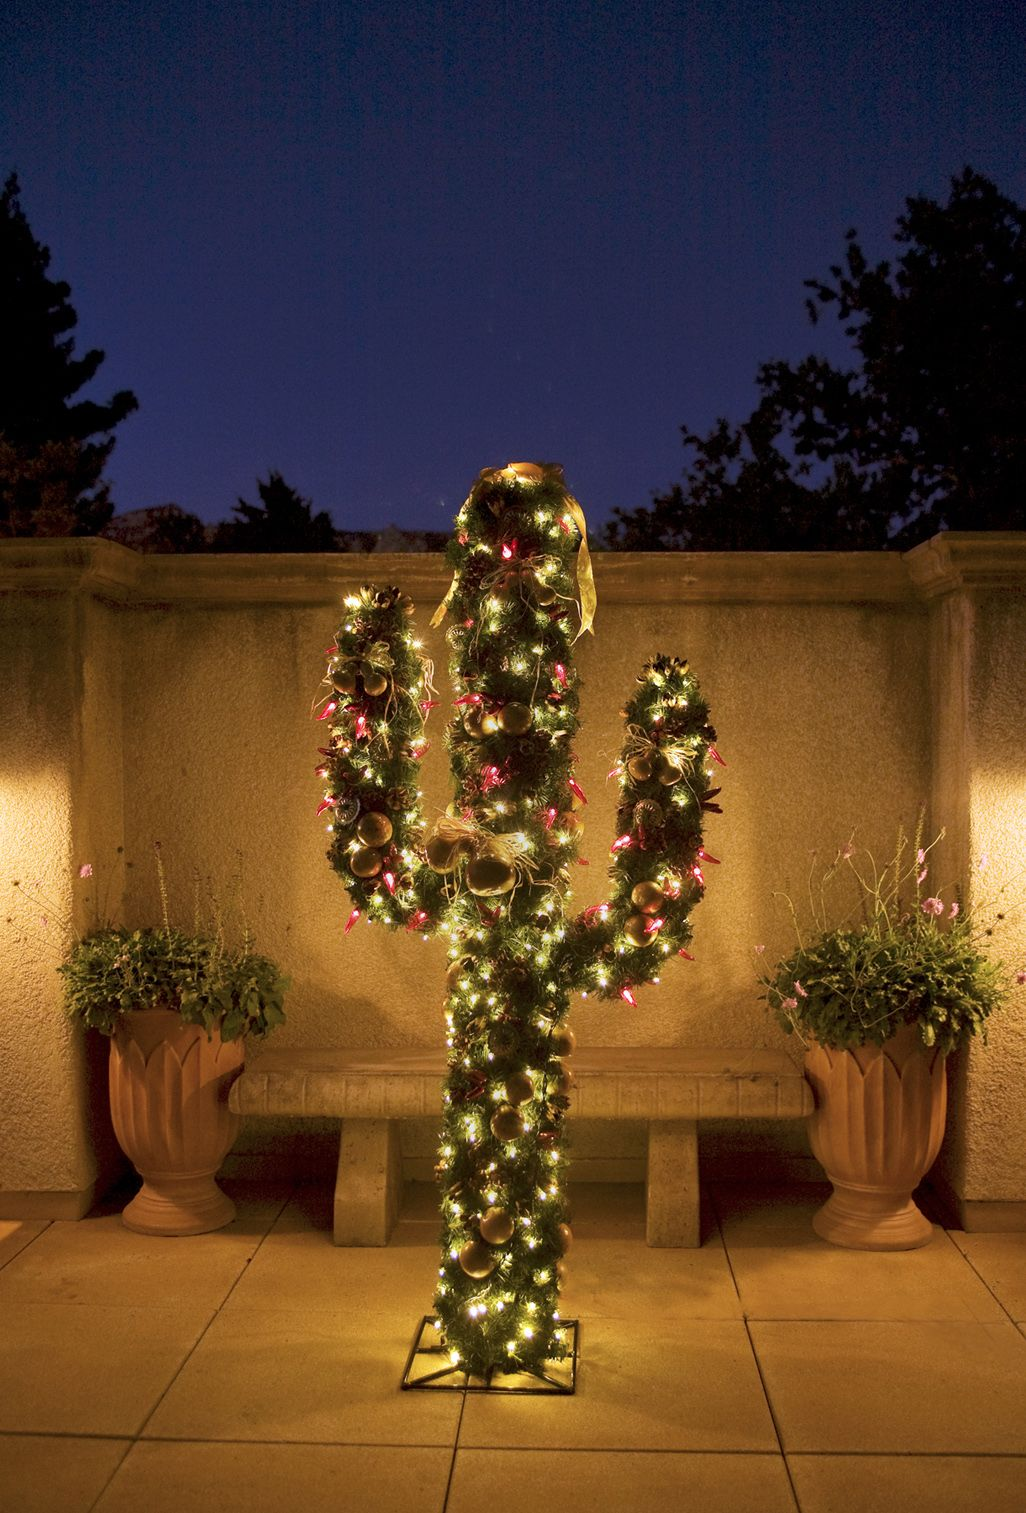 tlaqepaque sedona cactus christmas tree - Cactus Christmas Decorations